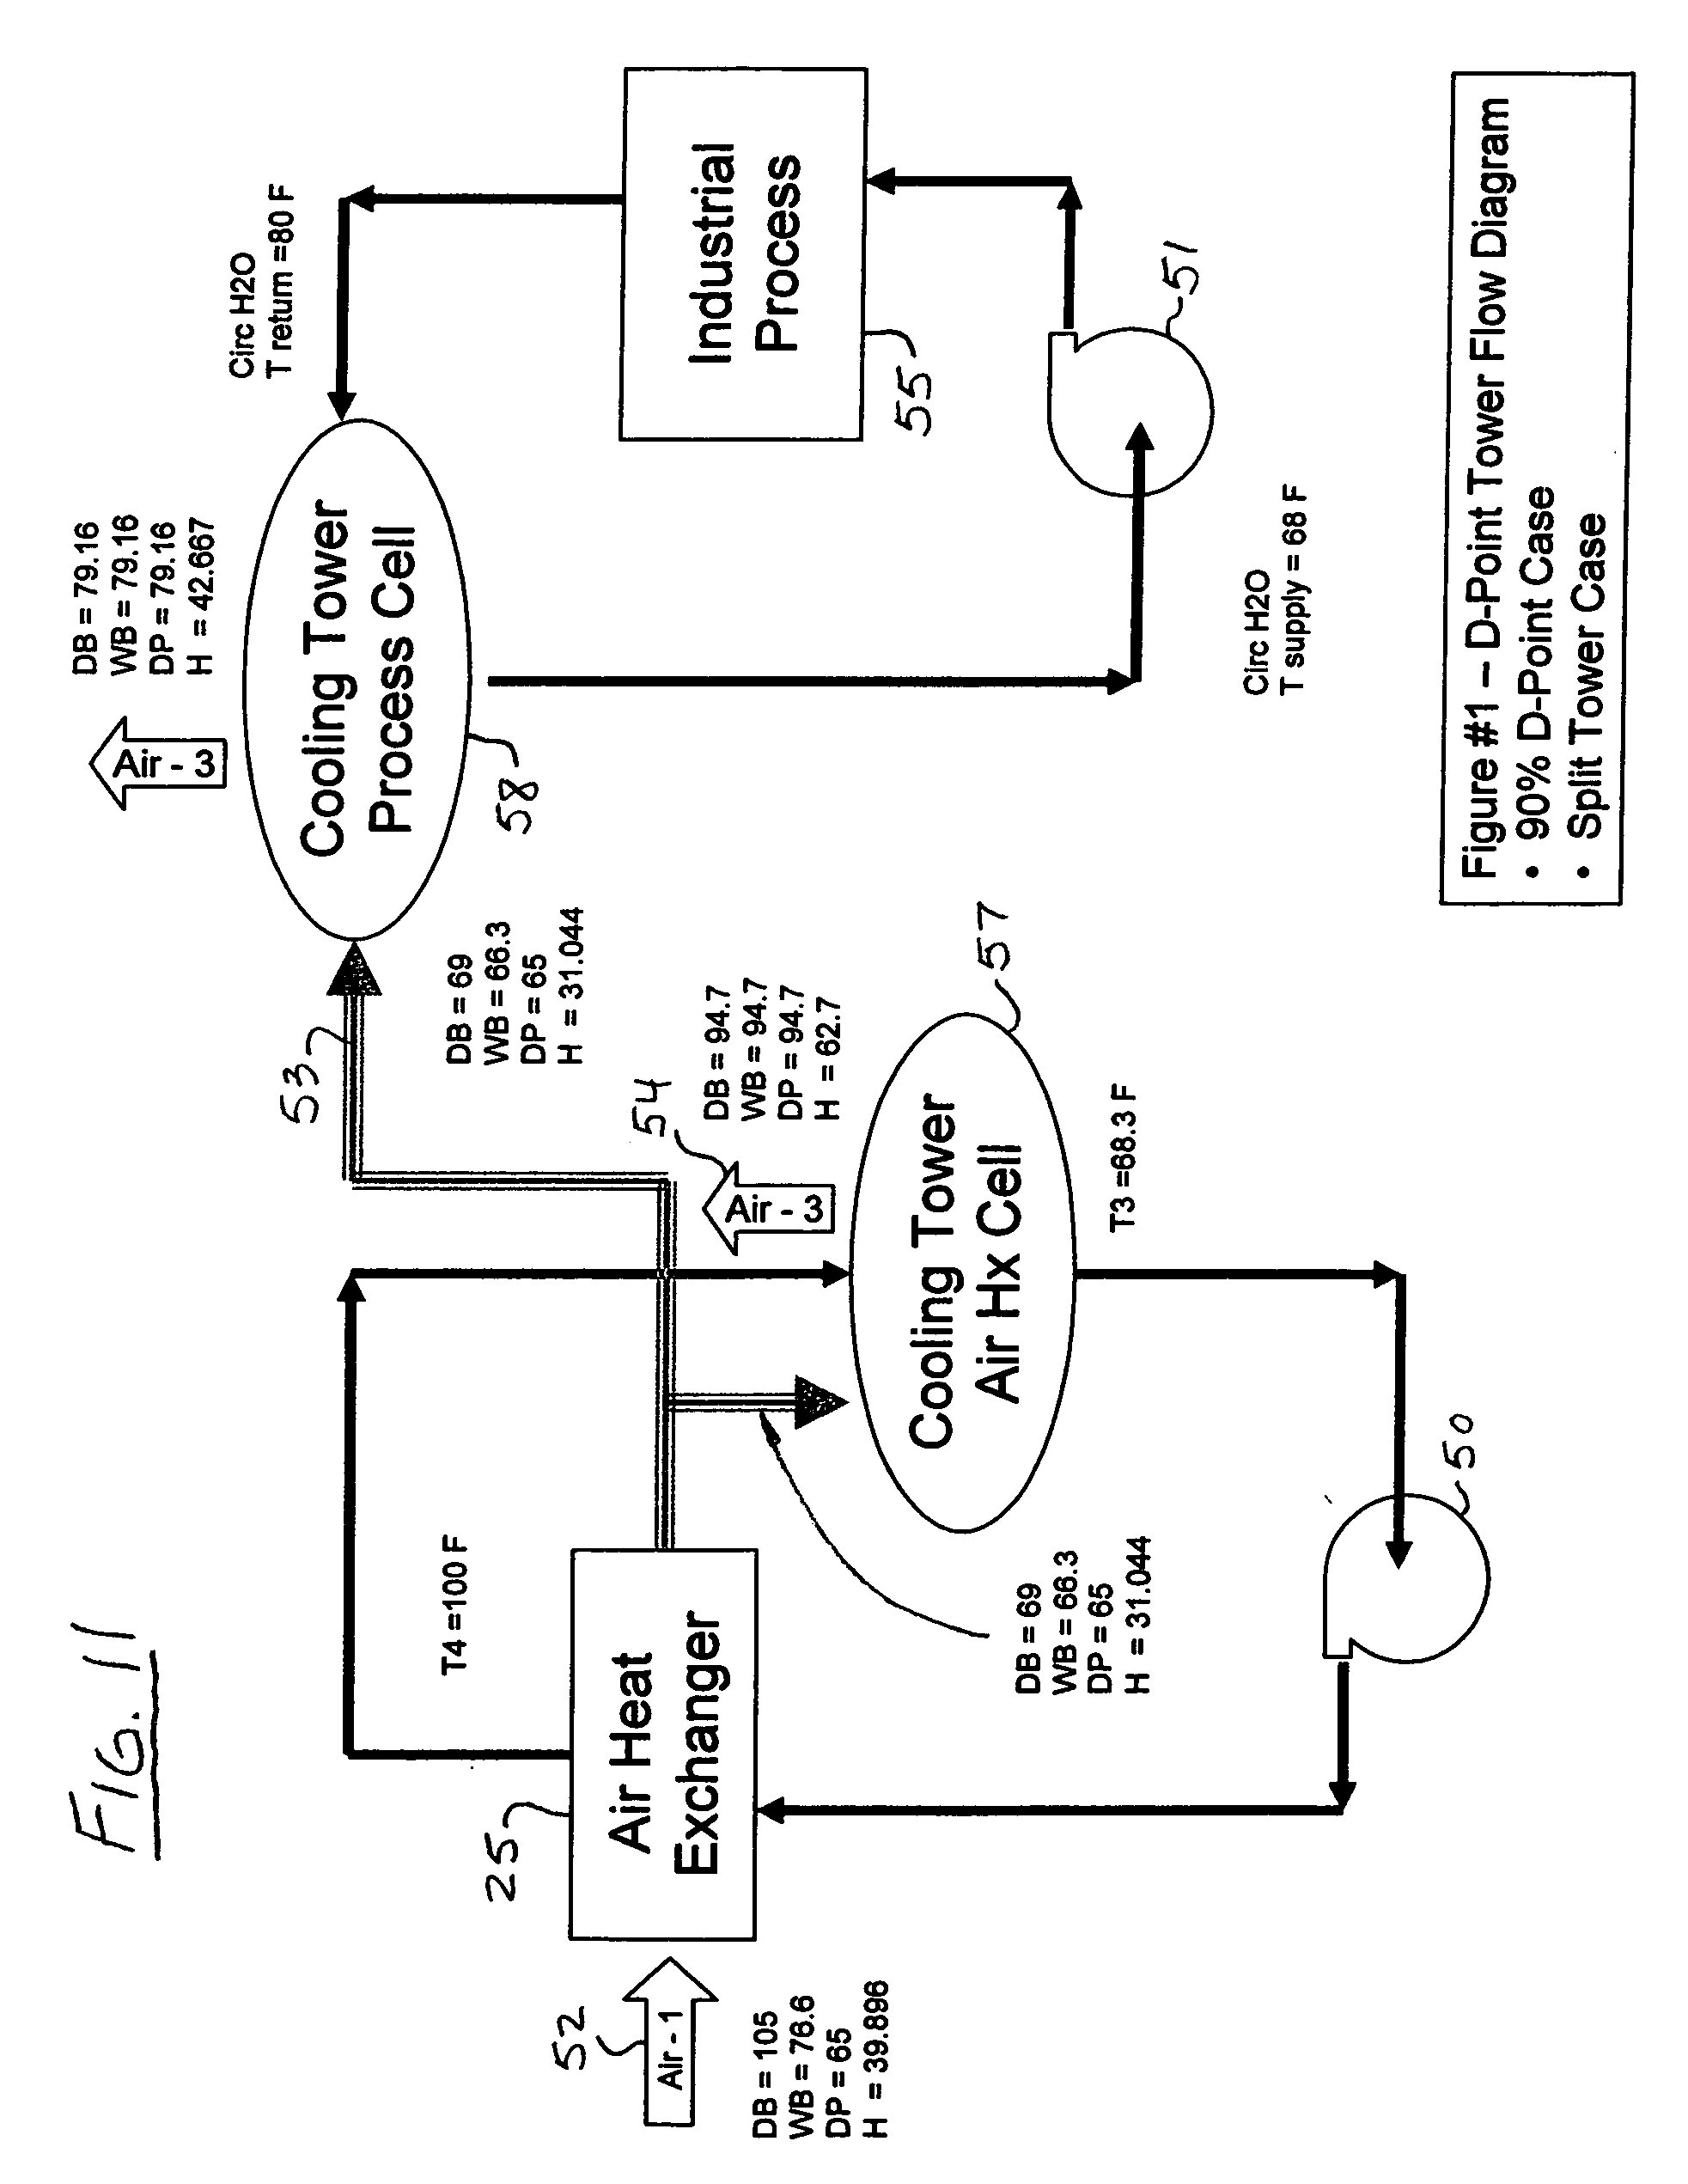 US20070241468 likewise 31767 Process Tubes together with 11130391 Piping And Instrumentation Diagramdrawing Pid Drawings Services furthermore Engine Diagram Cooling Tower as well Piping and instrumentation diagram. on cooling tower heat exchanger diagram